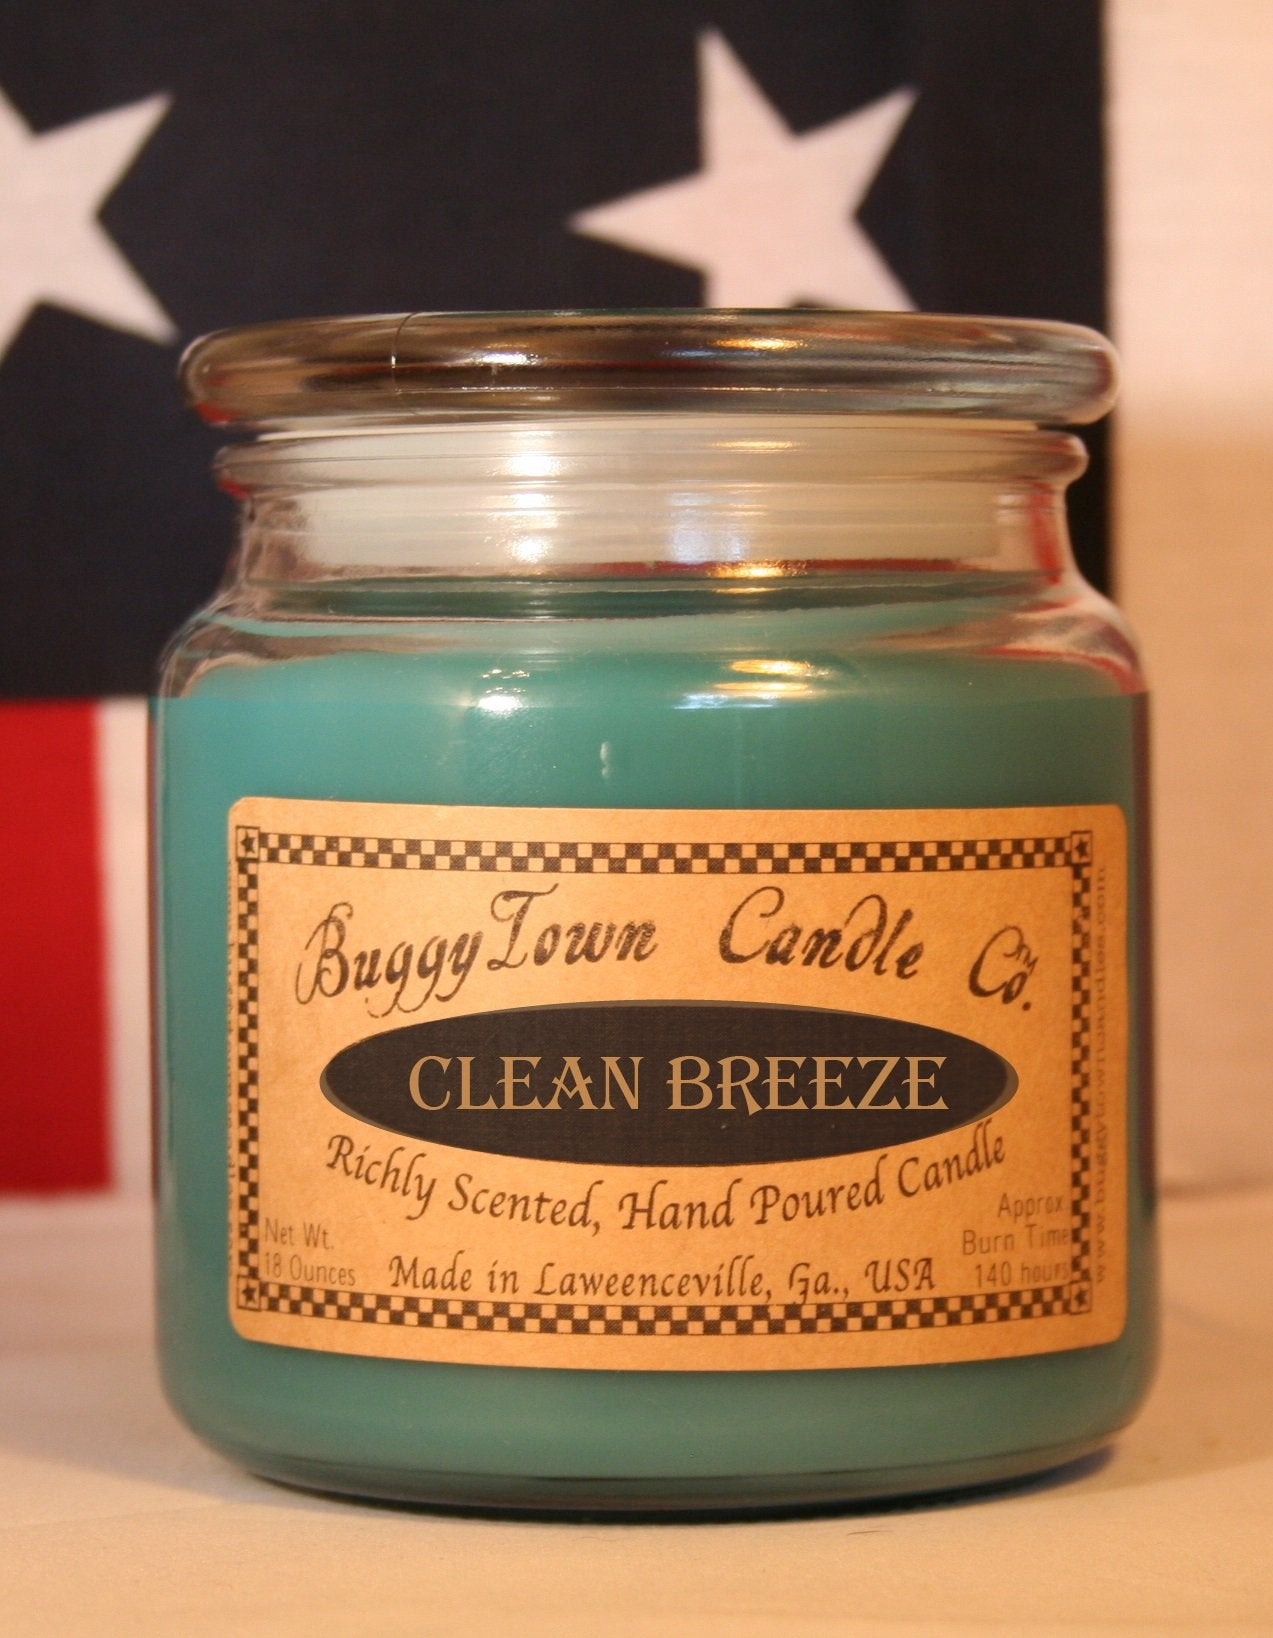 Clean Breeze Candles